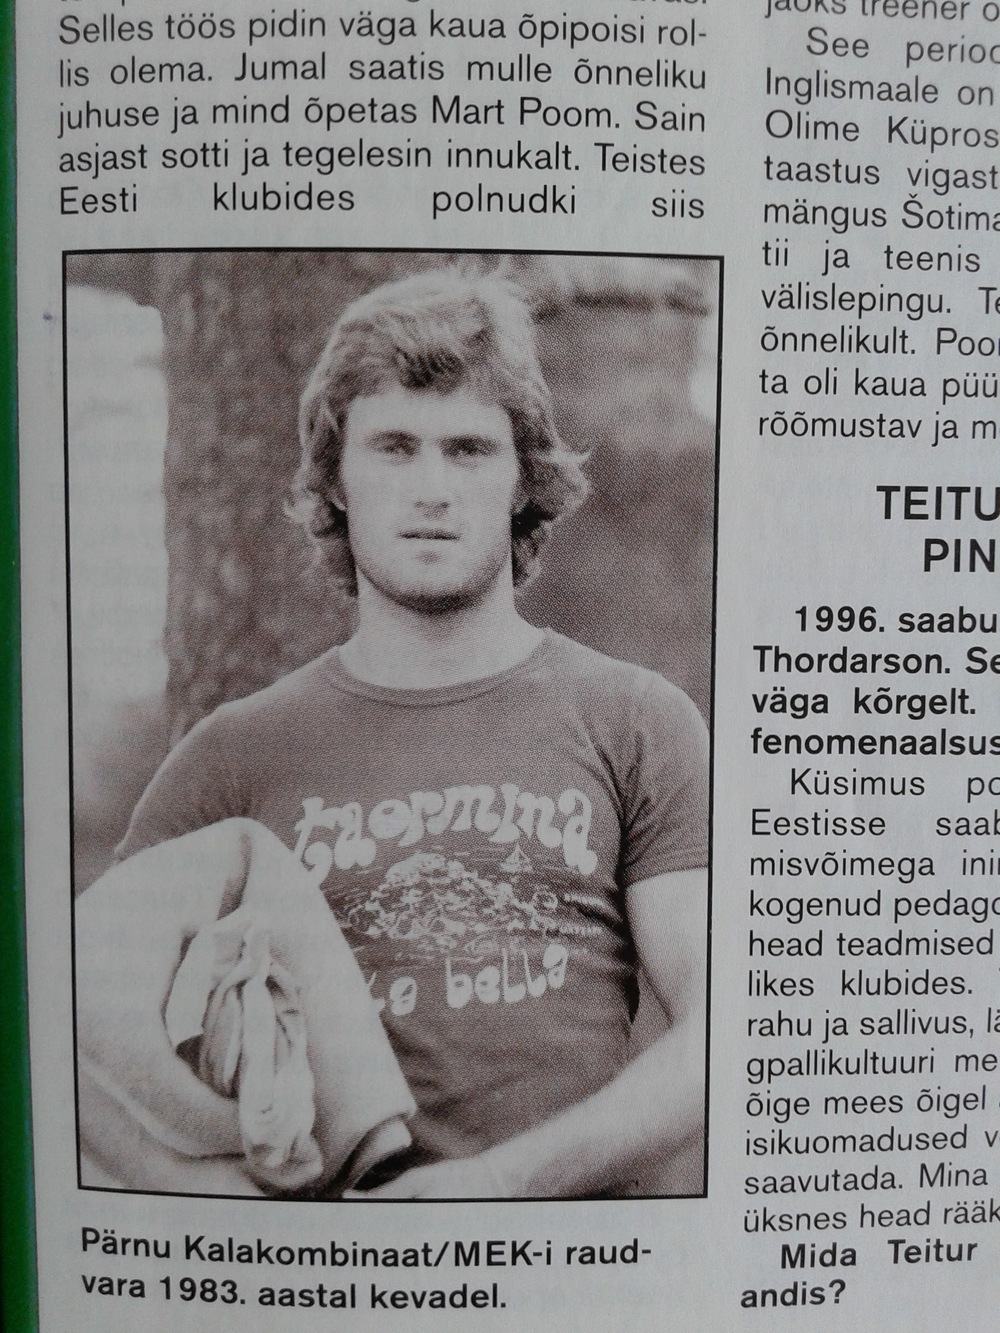 A long interview to Tarmo Rüütli with a 1983 picture